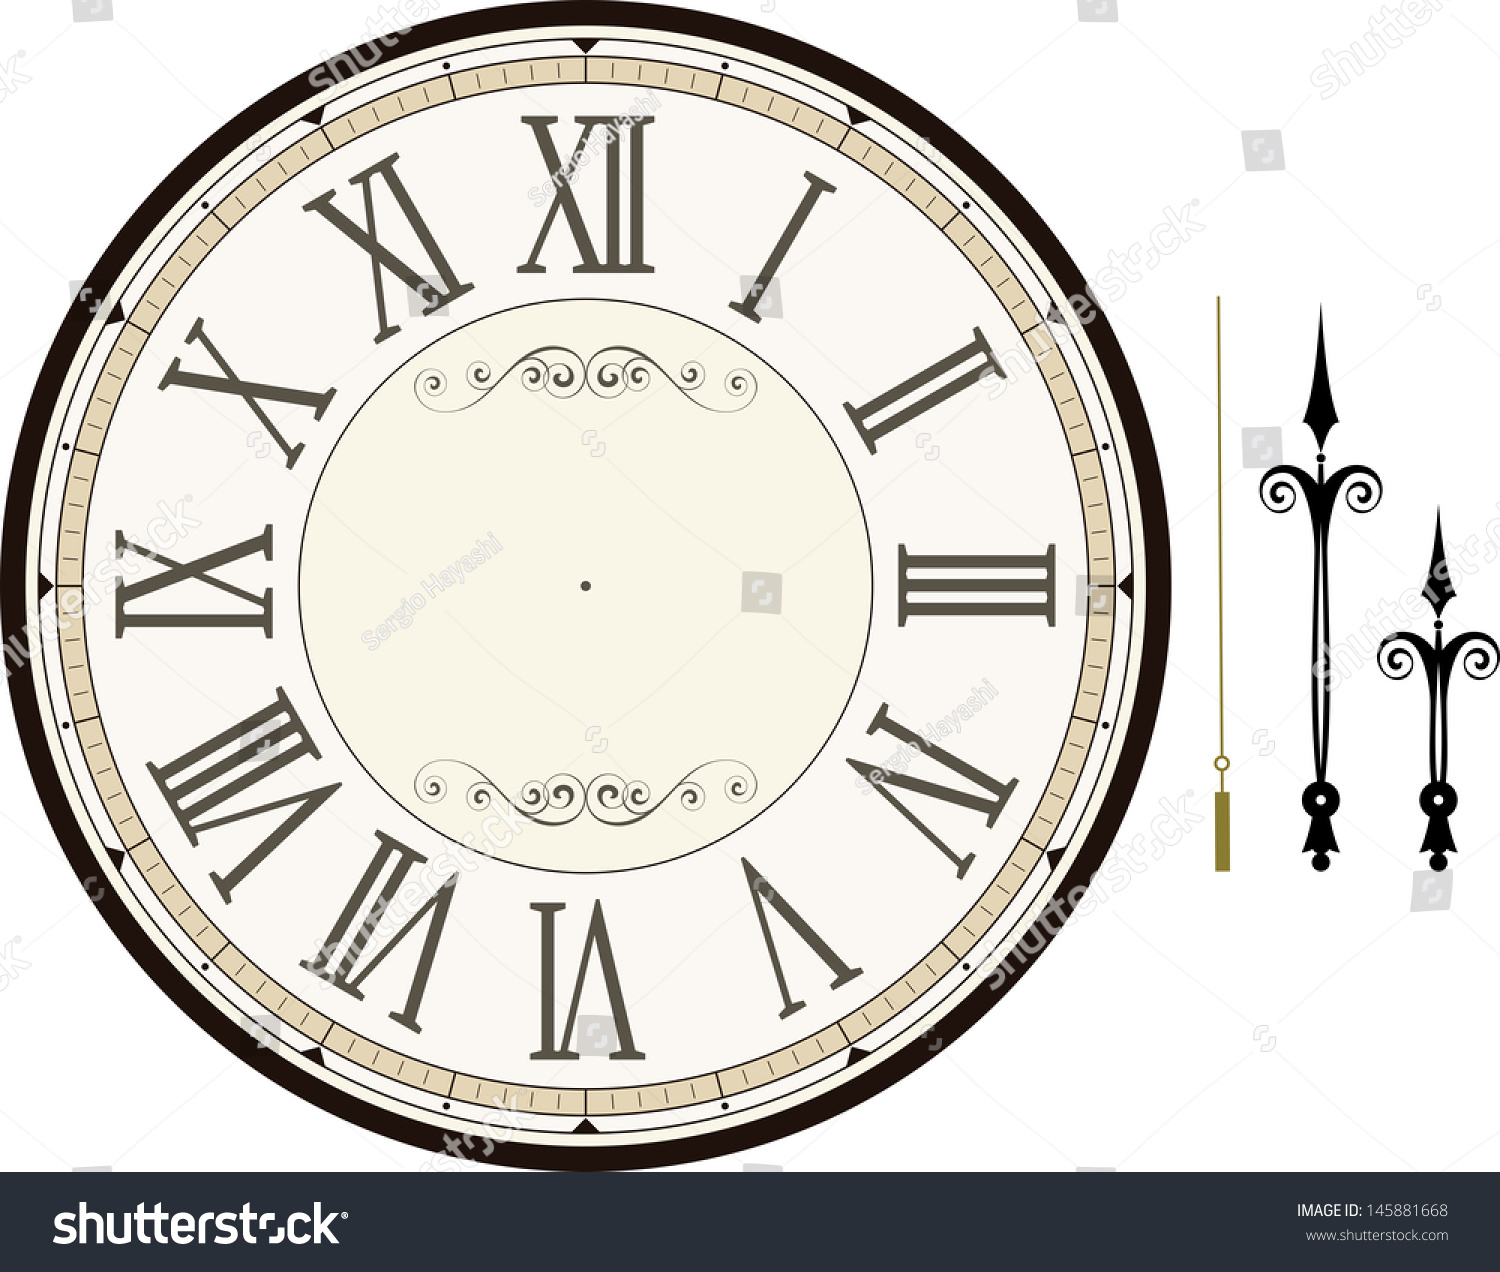 worksheet Clock Face Template vintage clock face template hour minute stock vector 145881668 with and second hands to make your own time